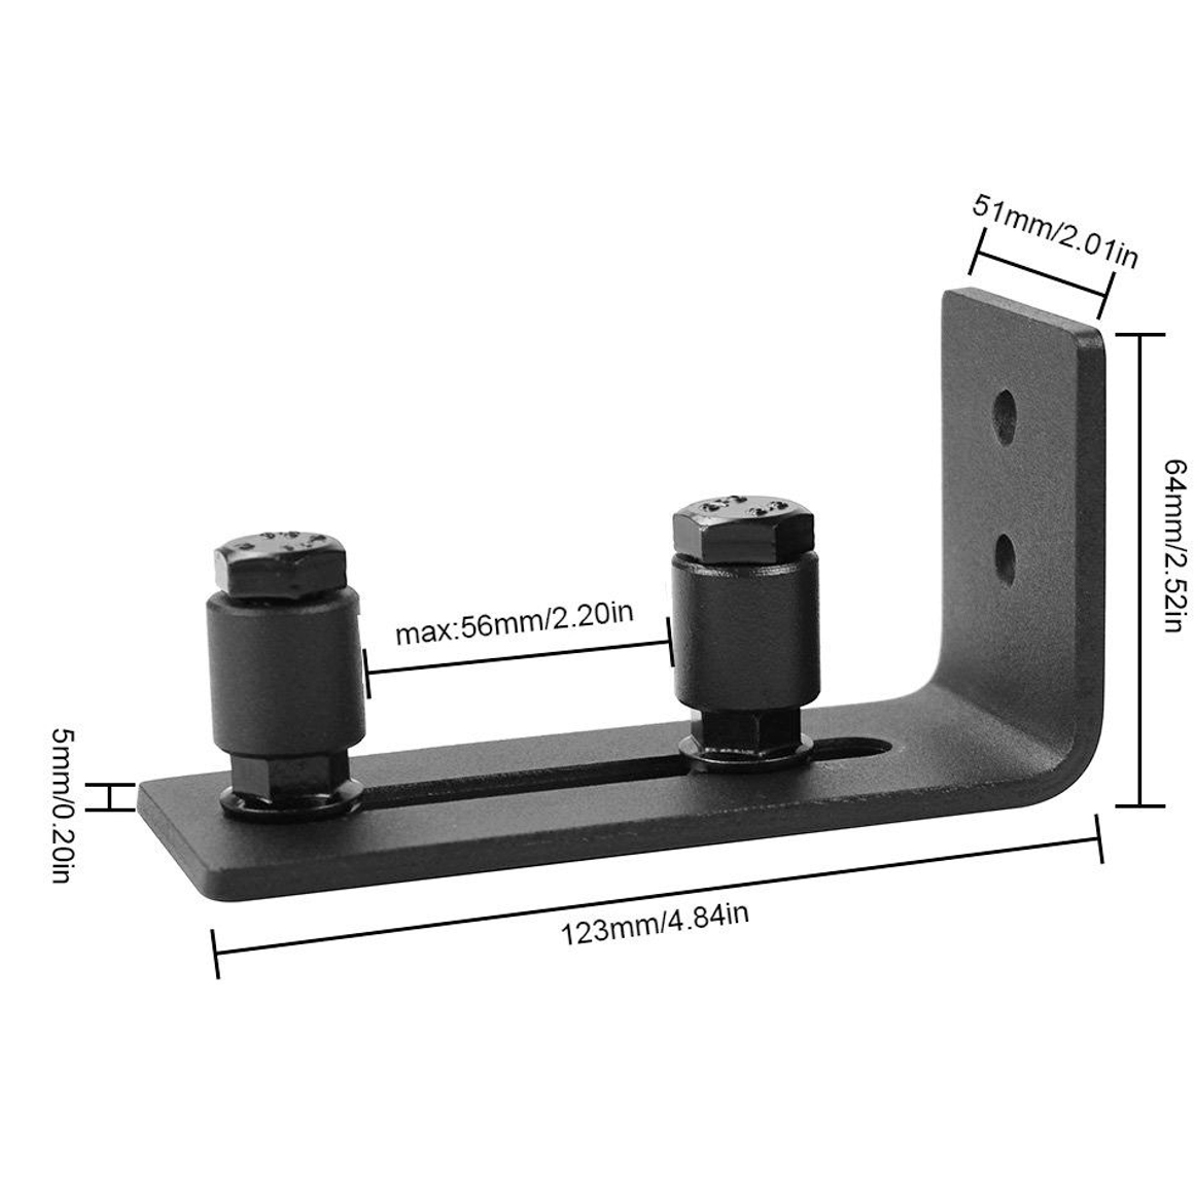 Sliding Barn Door Bottom Wall Guide Mount Adjustable Hardware with Screws Set